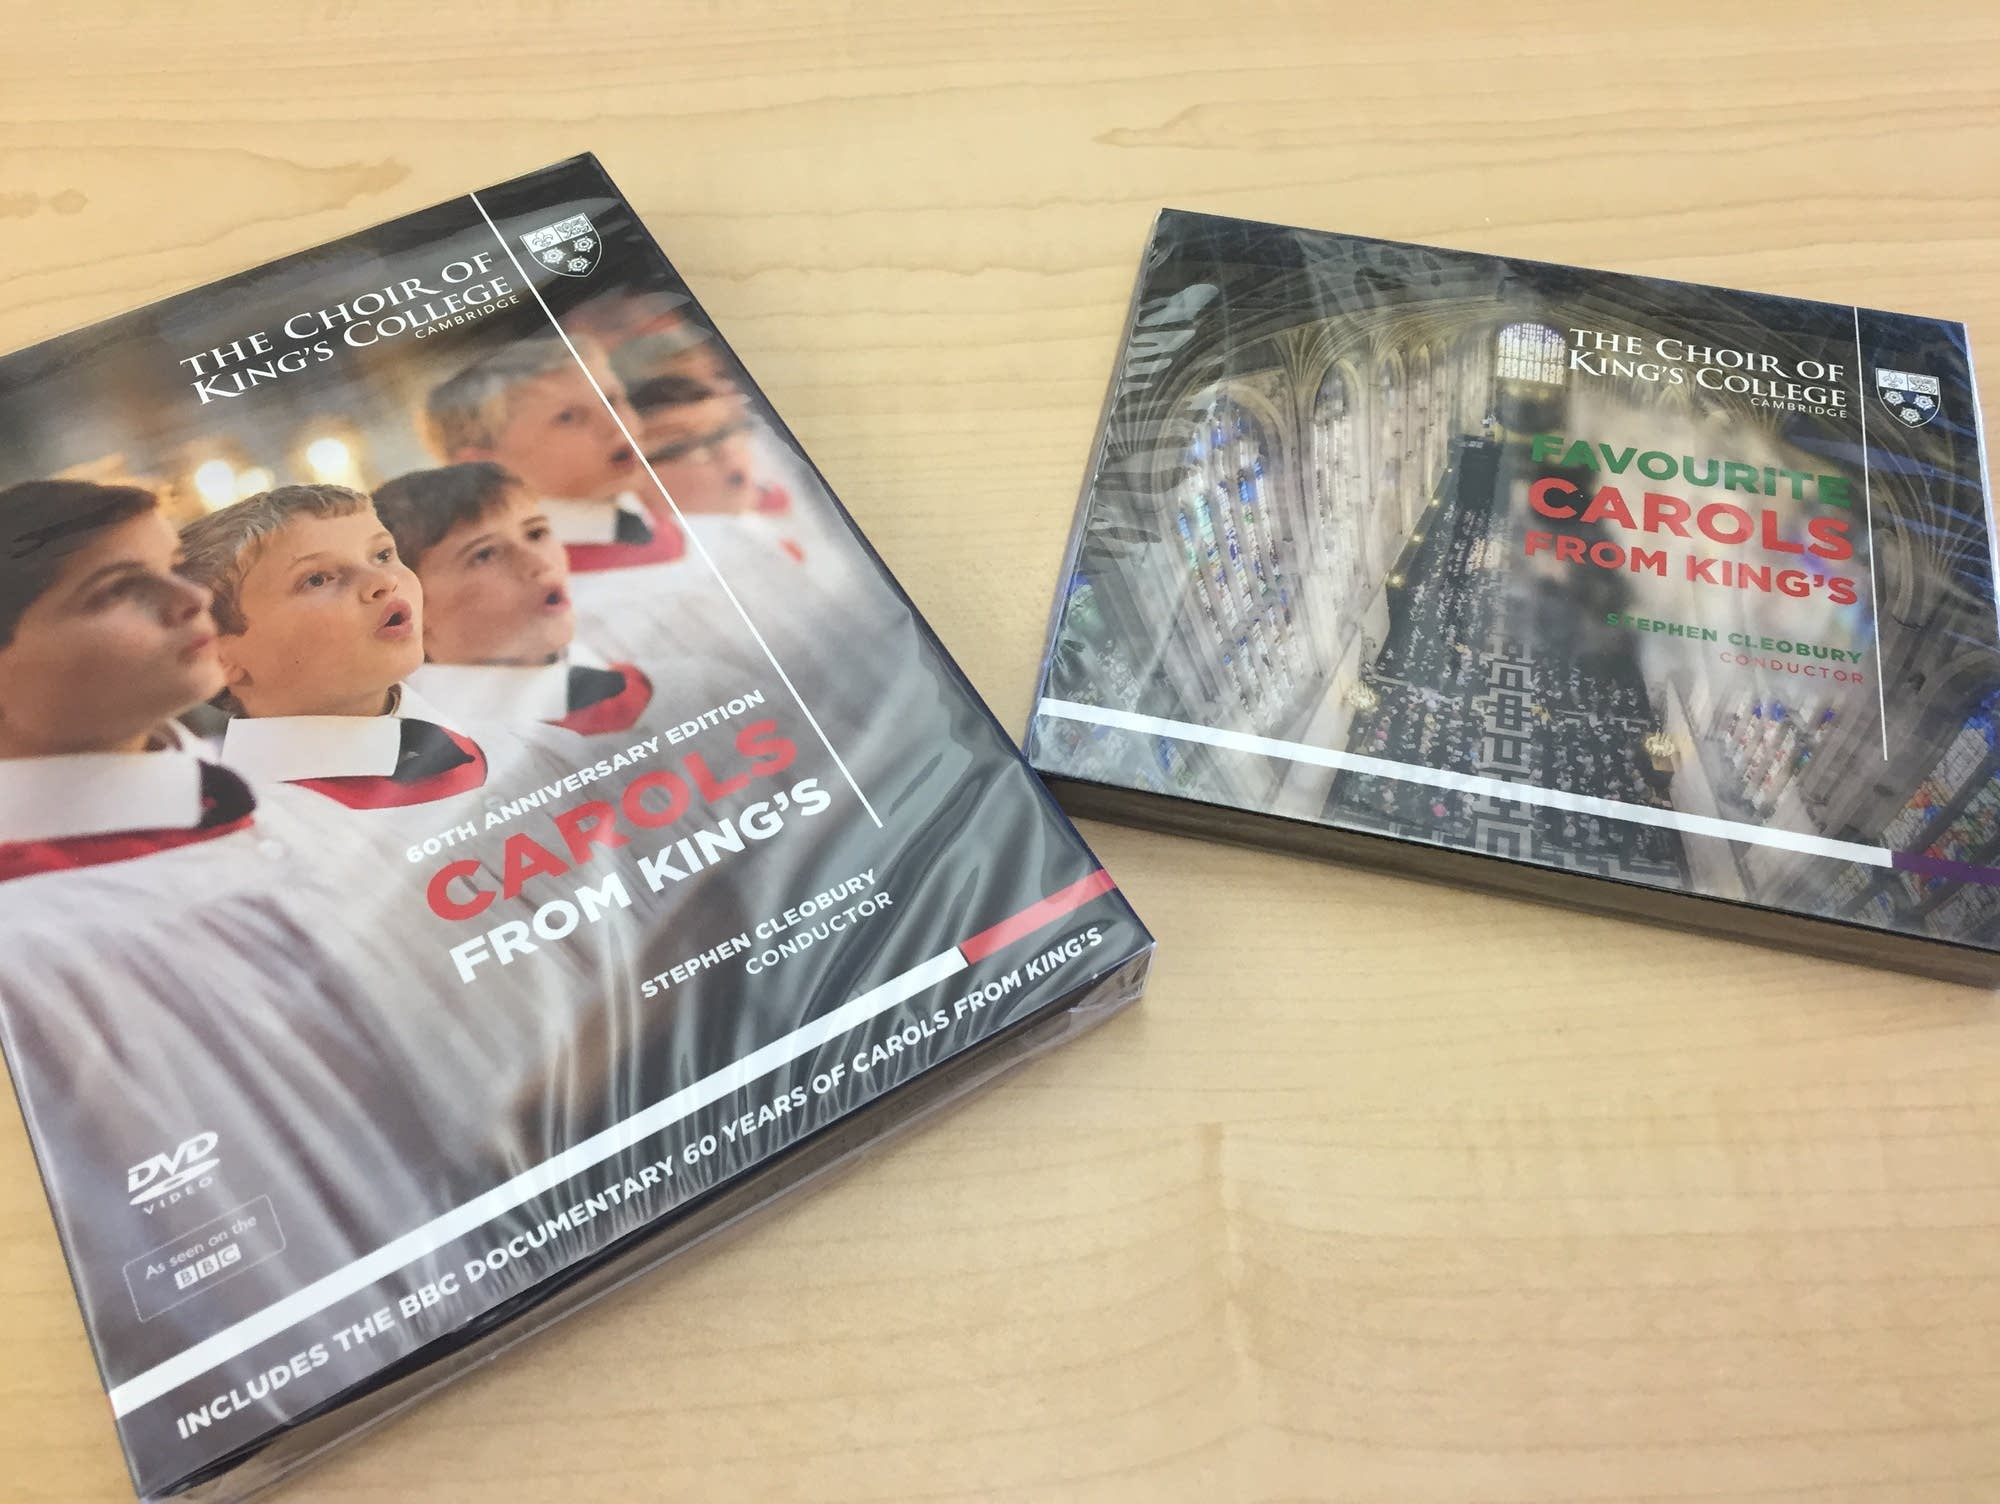 King's College Choir DVD and CD